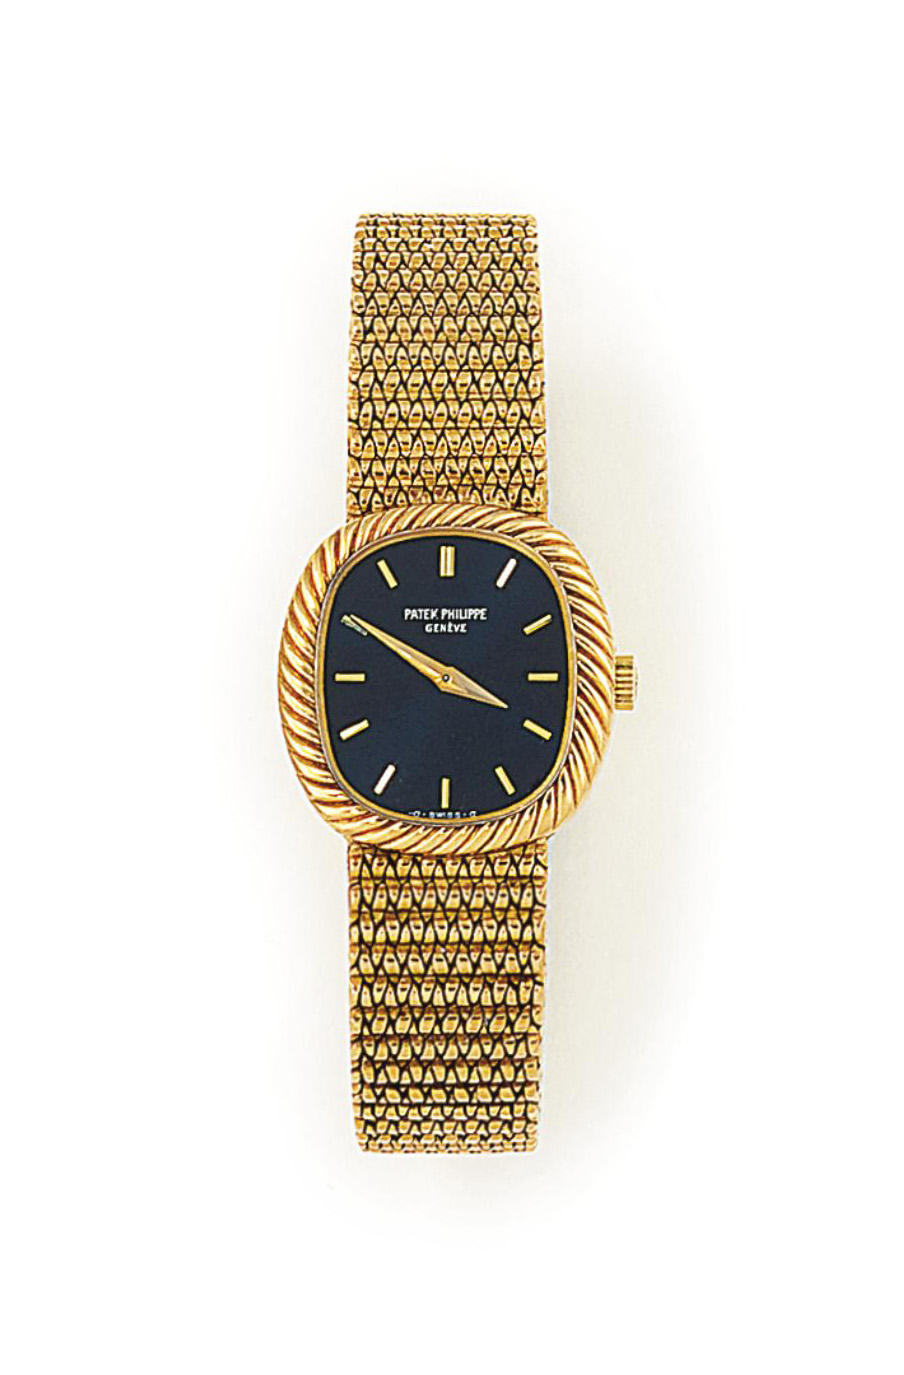 AN 18CT GOLD WRISTWATCH, BY PA